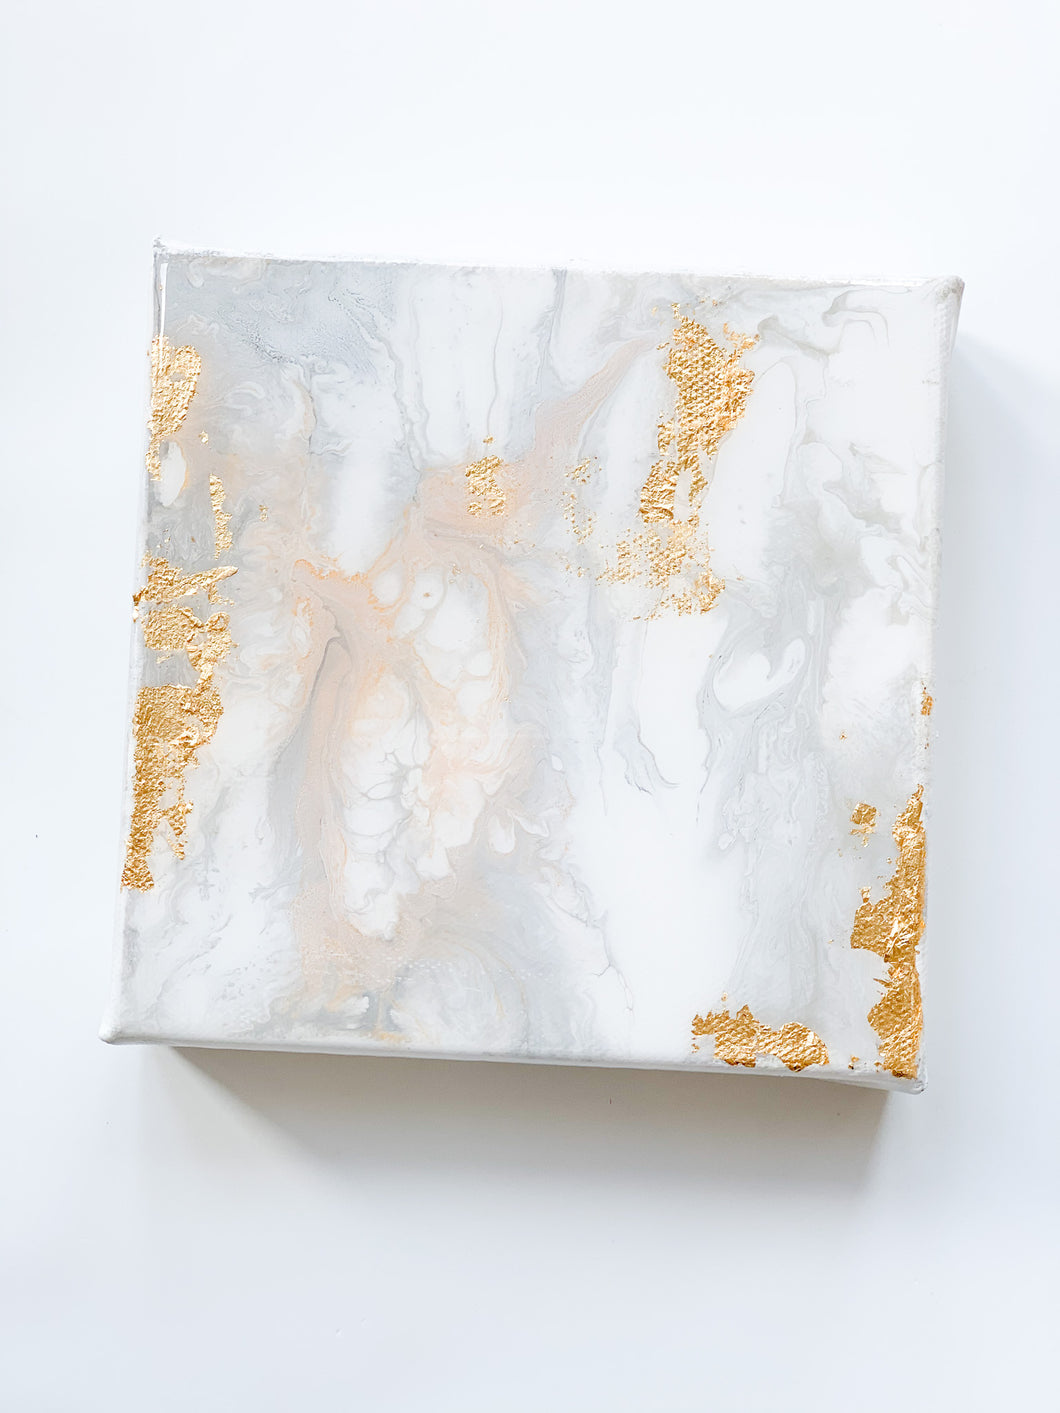 Abstract on Canvas - White 6x6